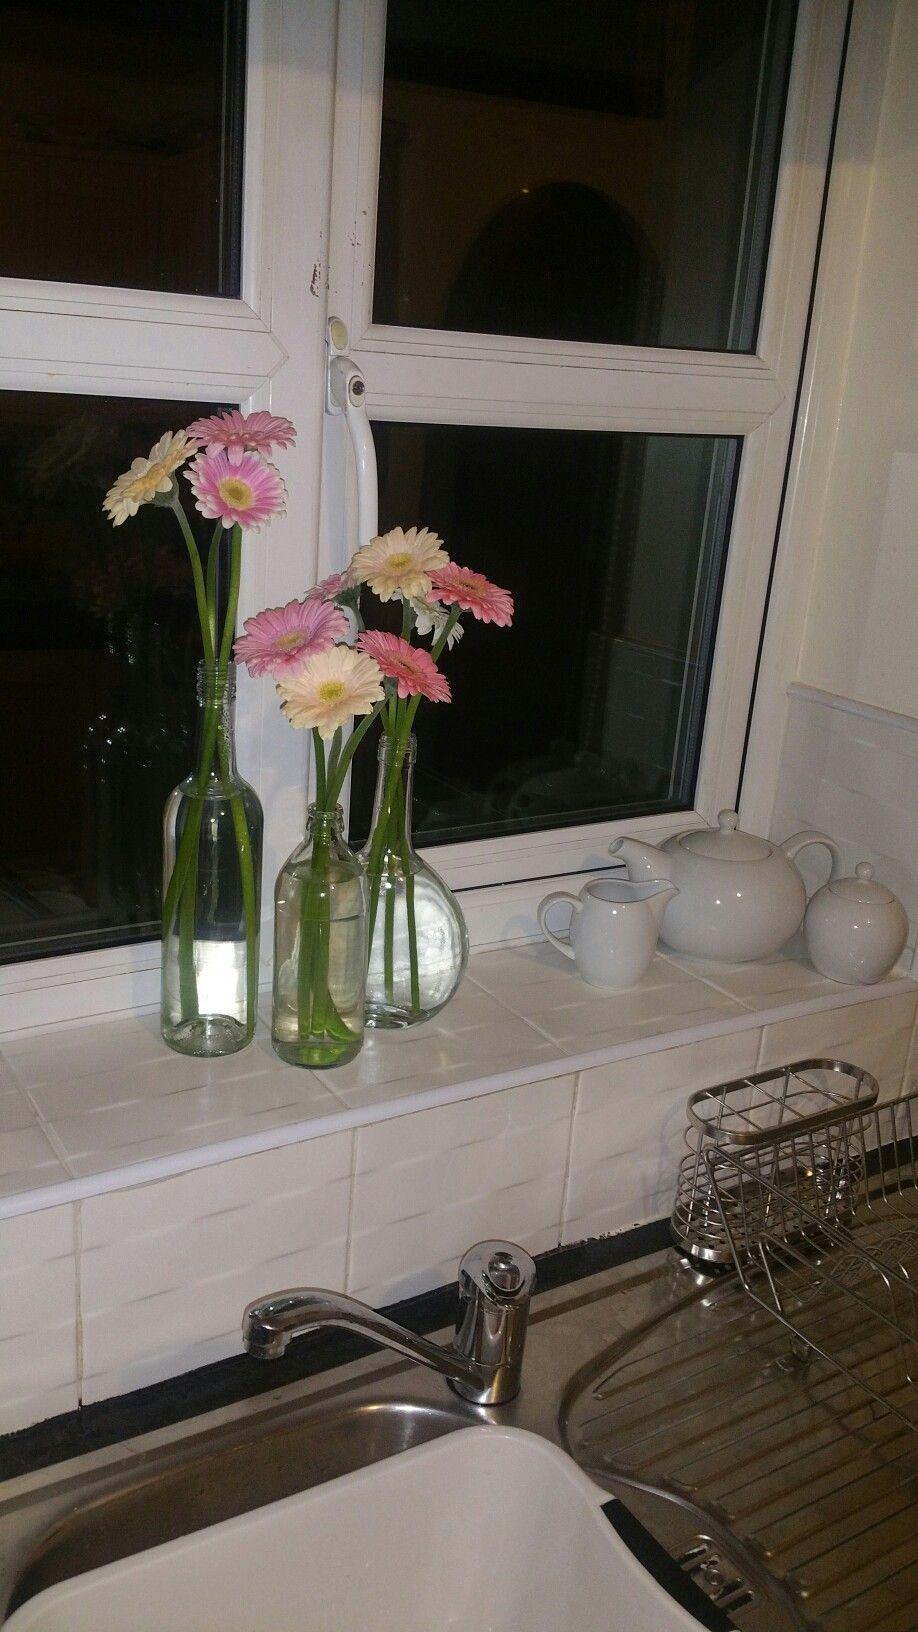 Kitchen window gorgeous gerbras pink and creams